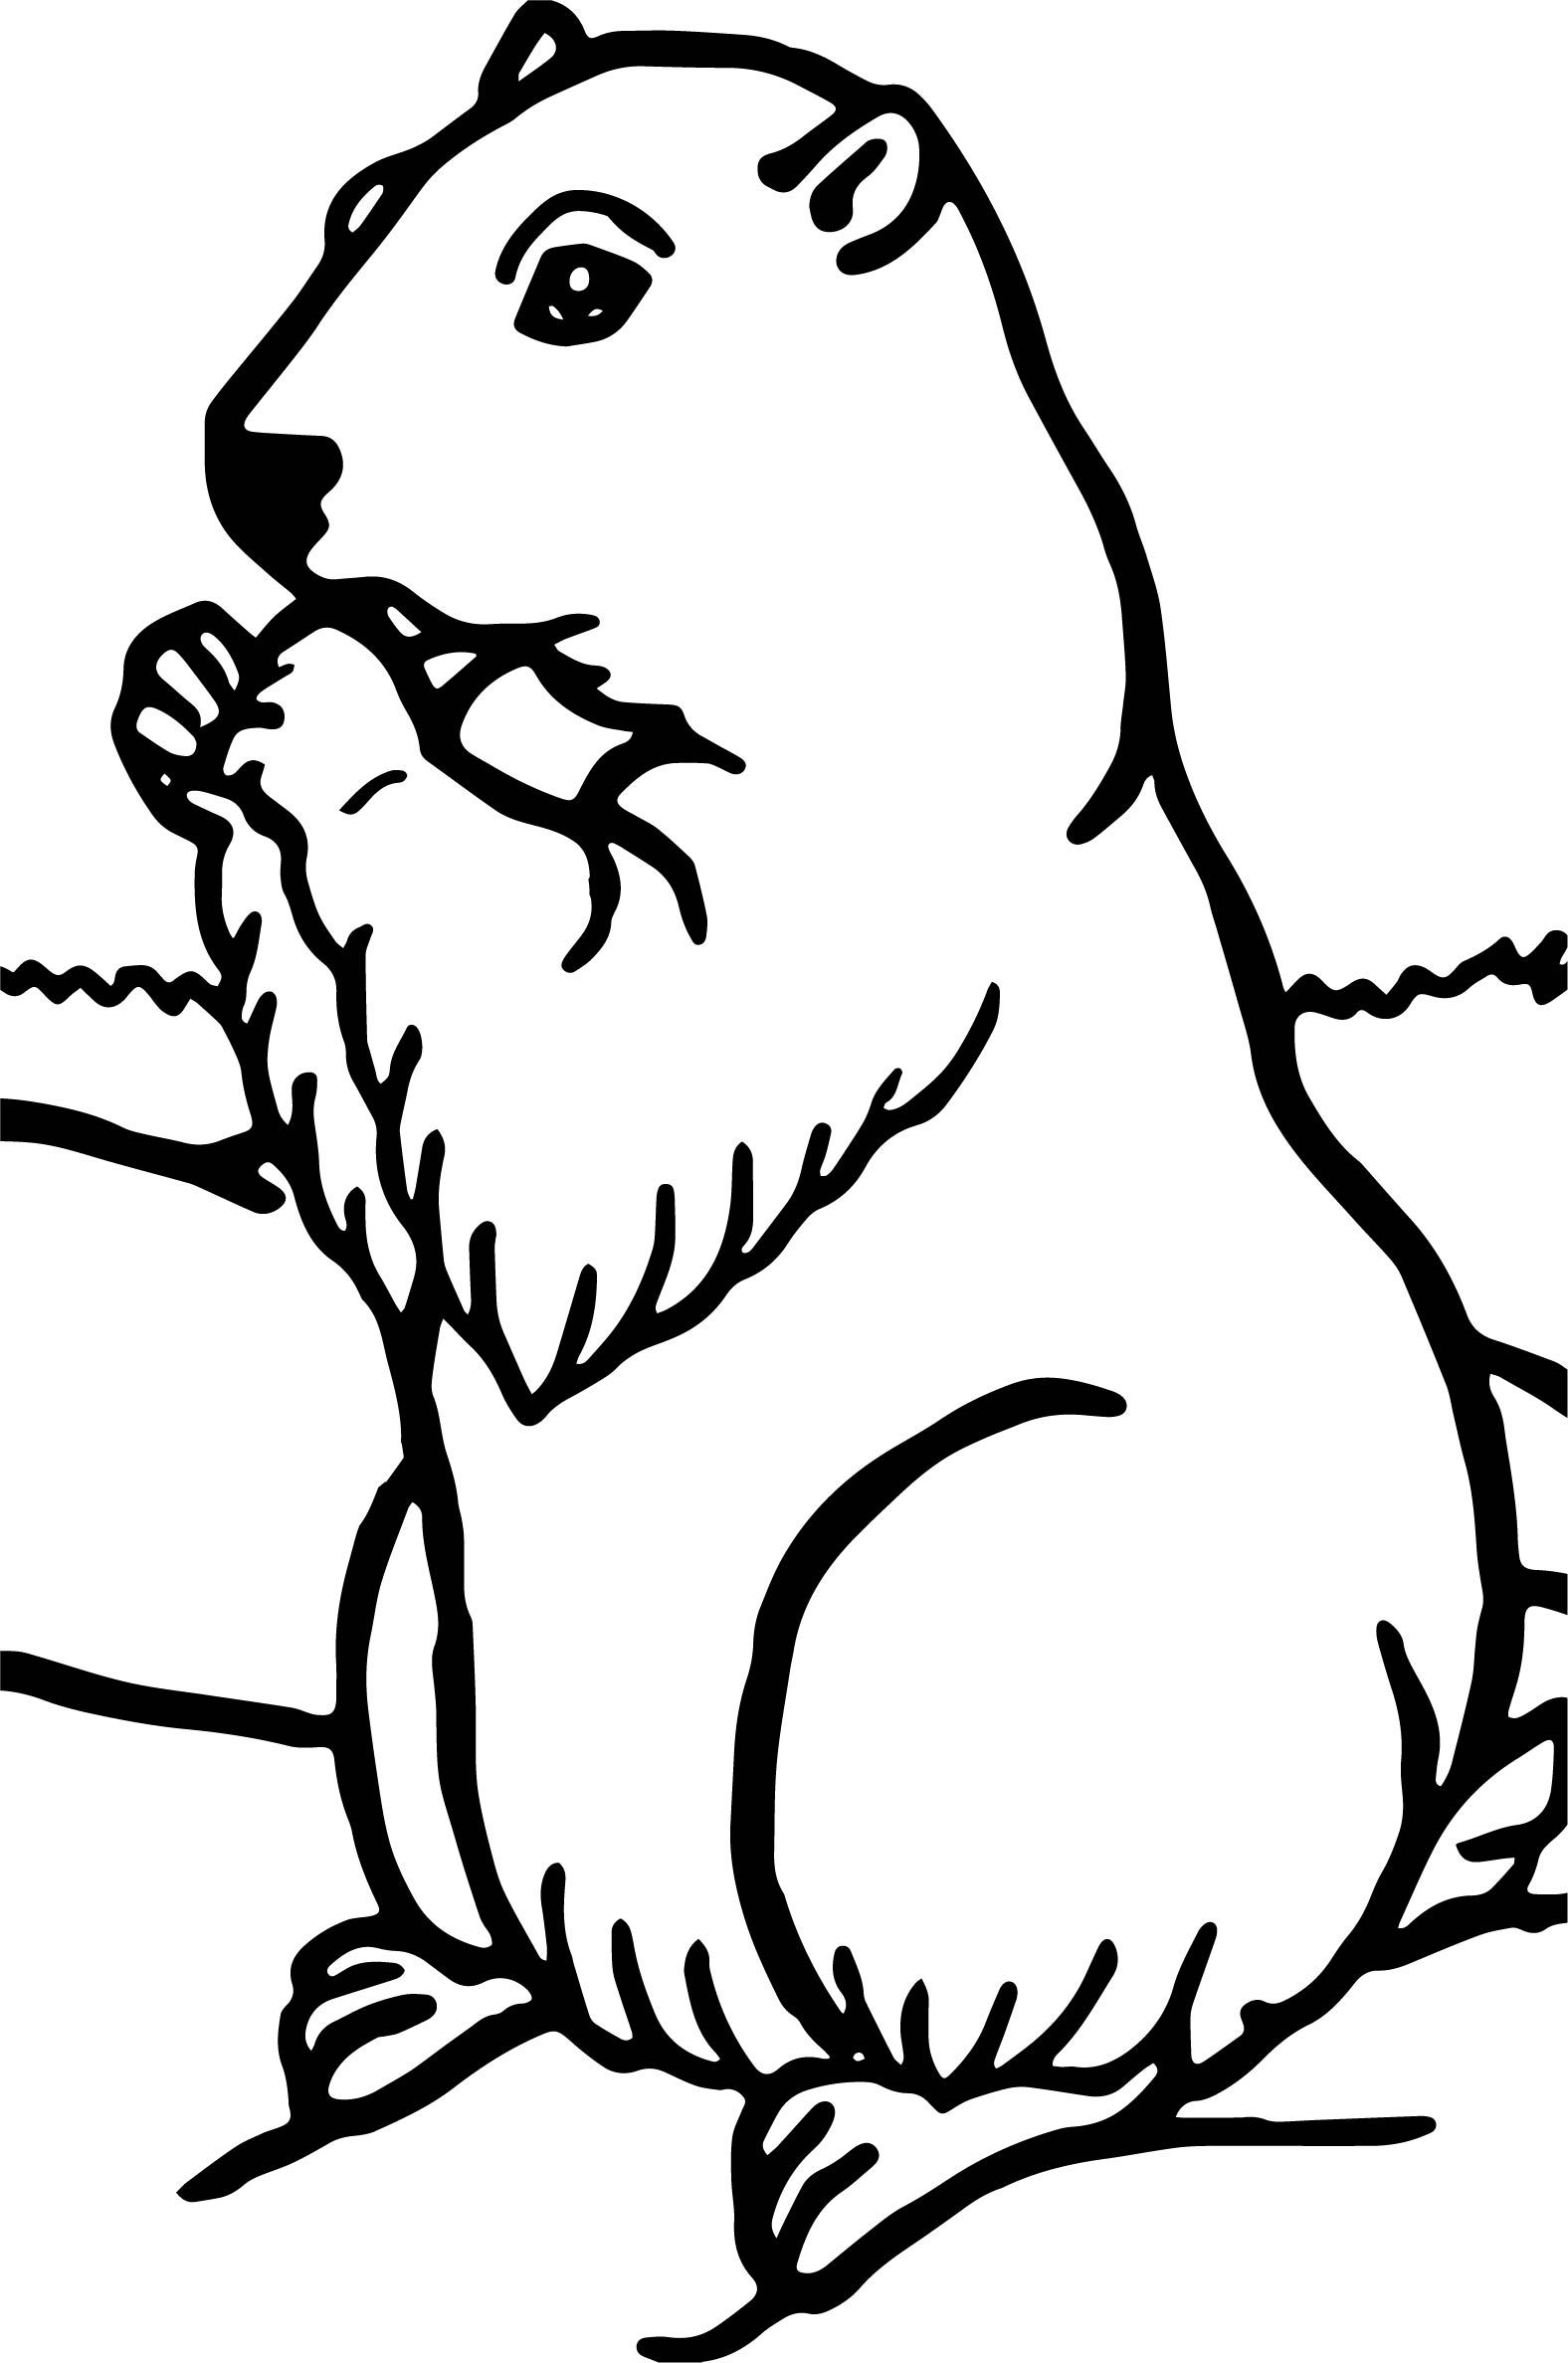 Groundhog Coloring Pages Animal Coloring Pages Coloring Pages